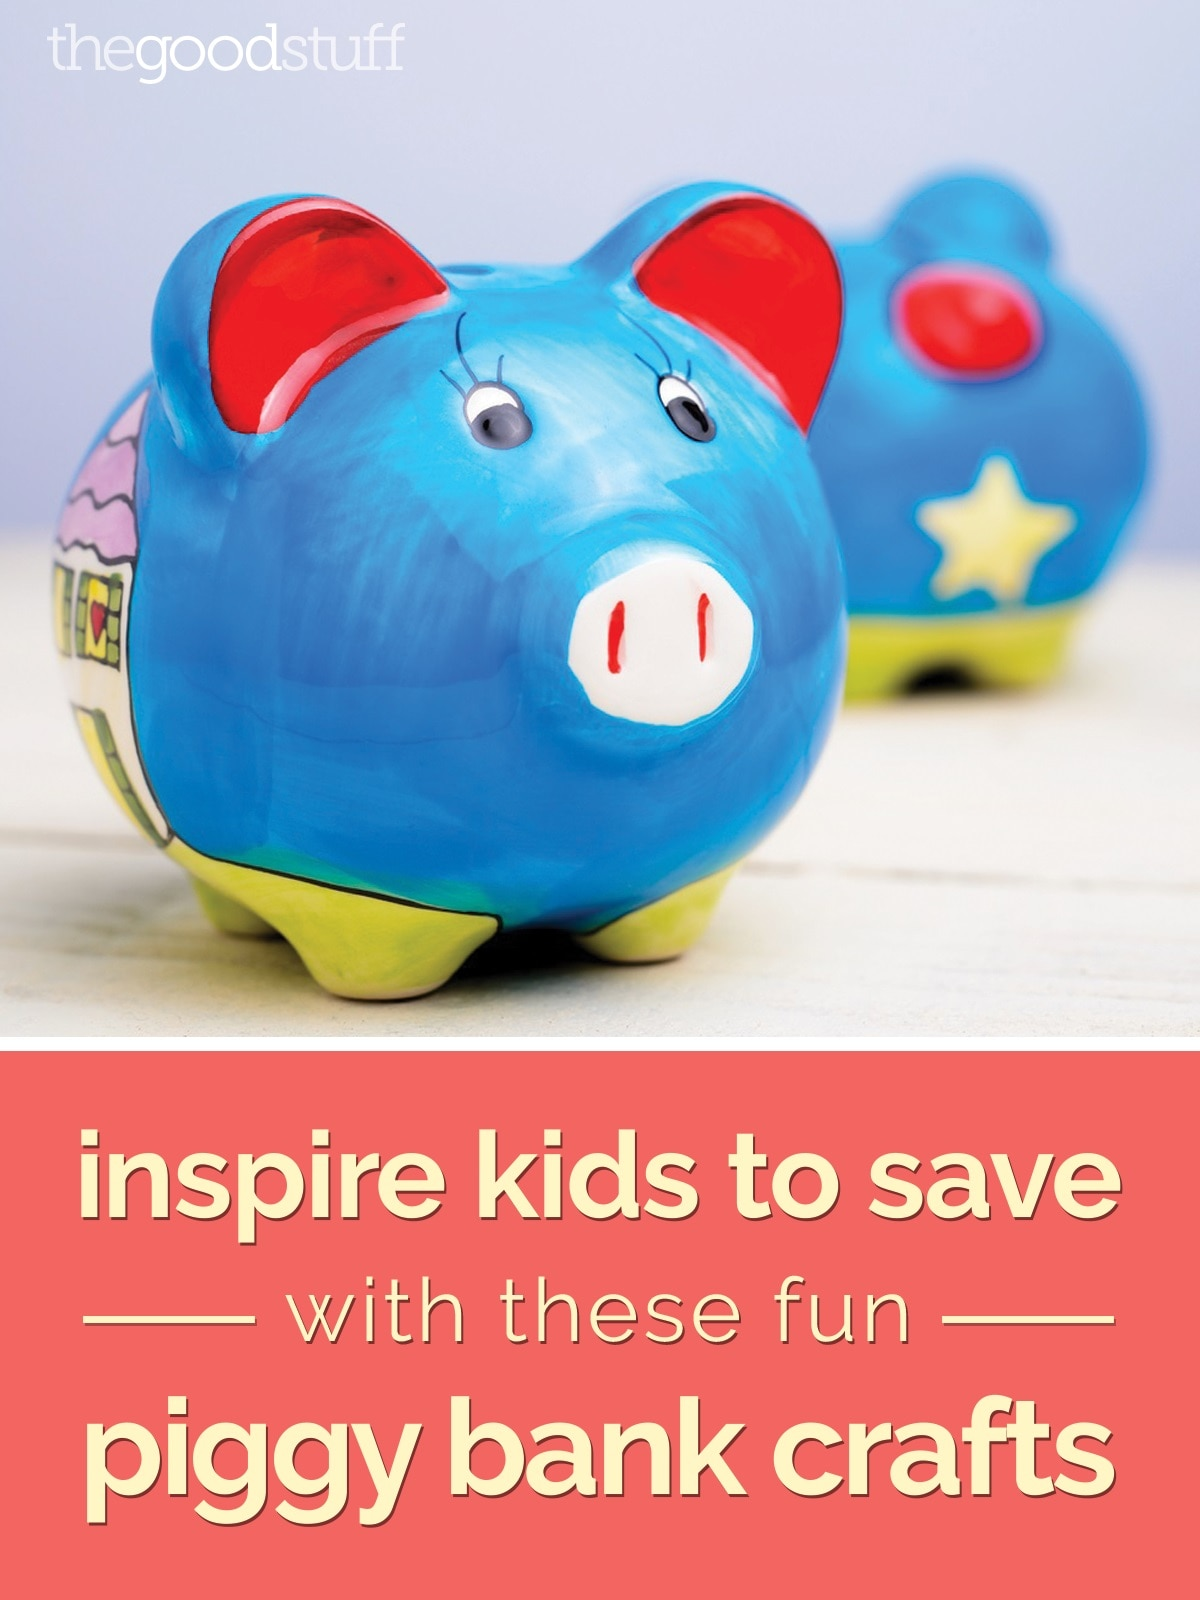 diy-piggy-bank-crafts